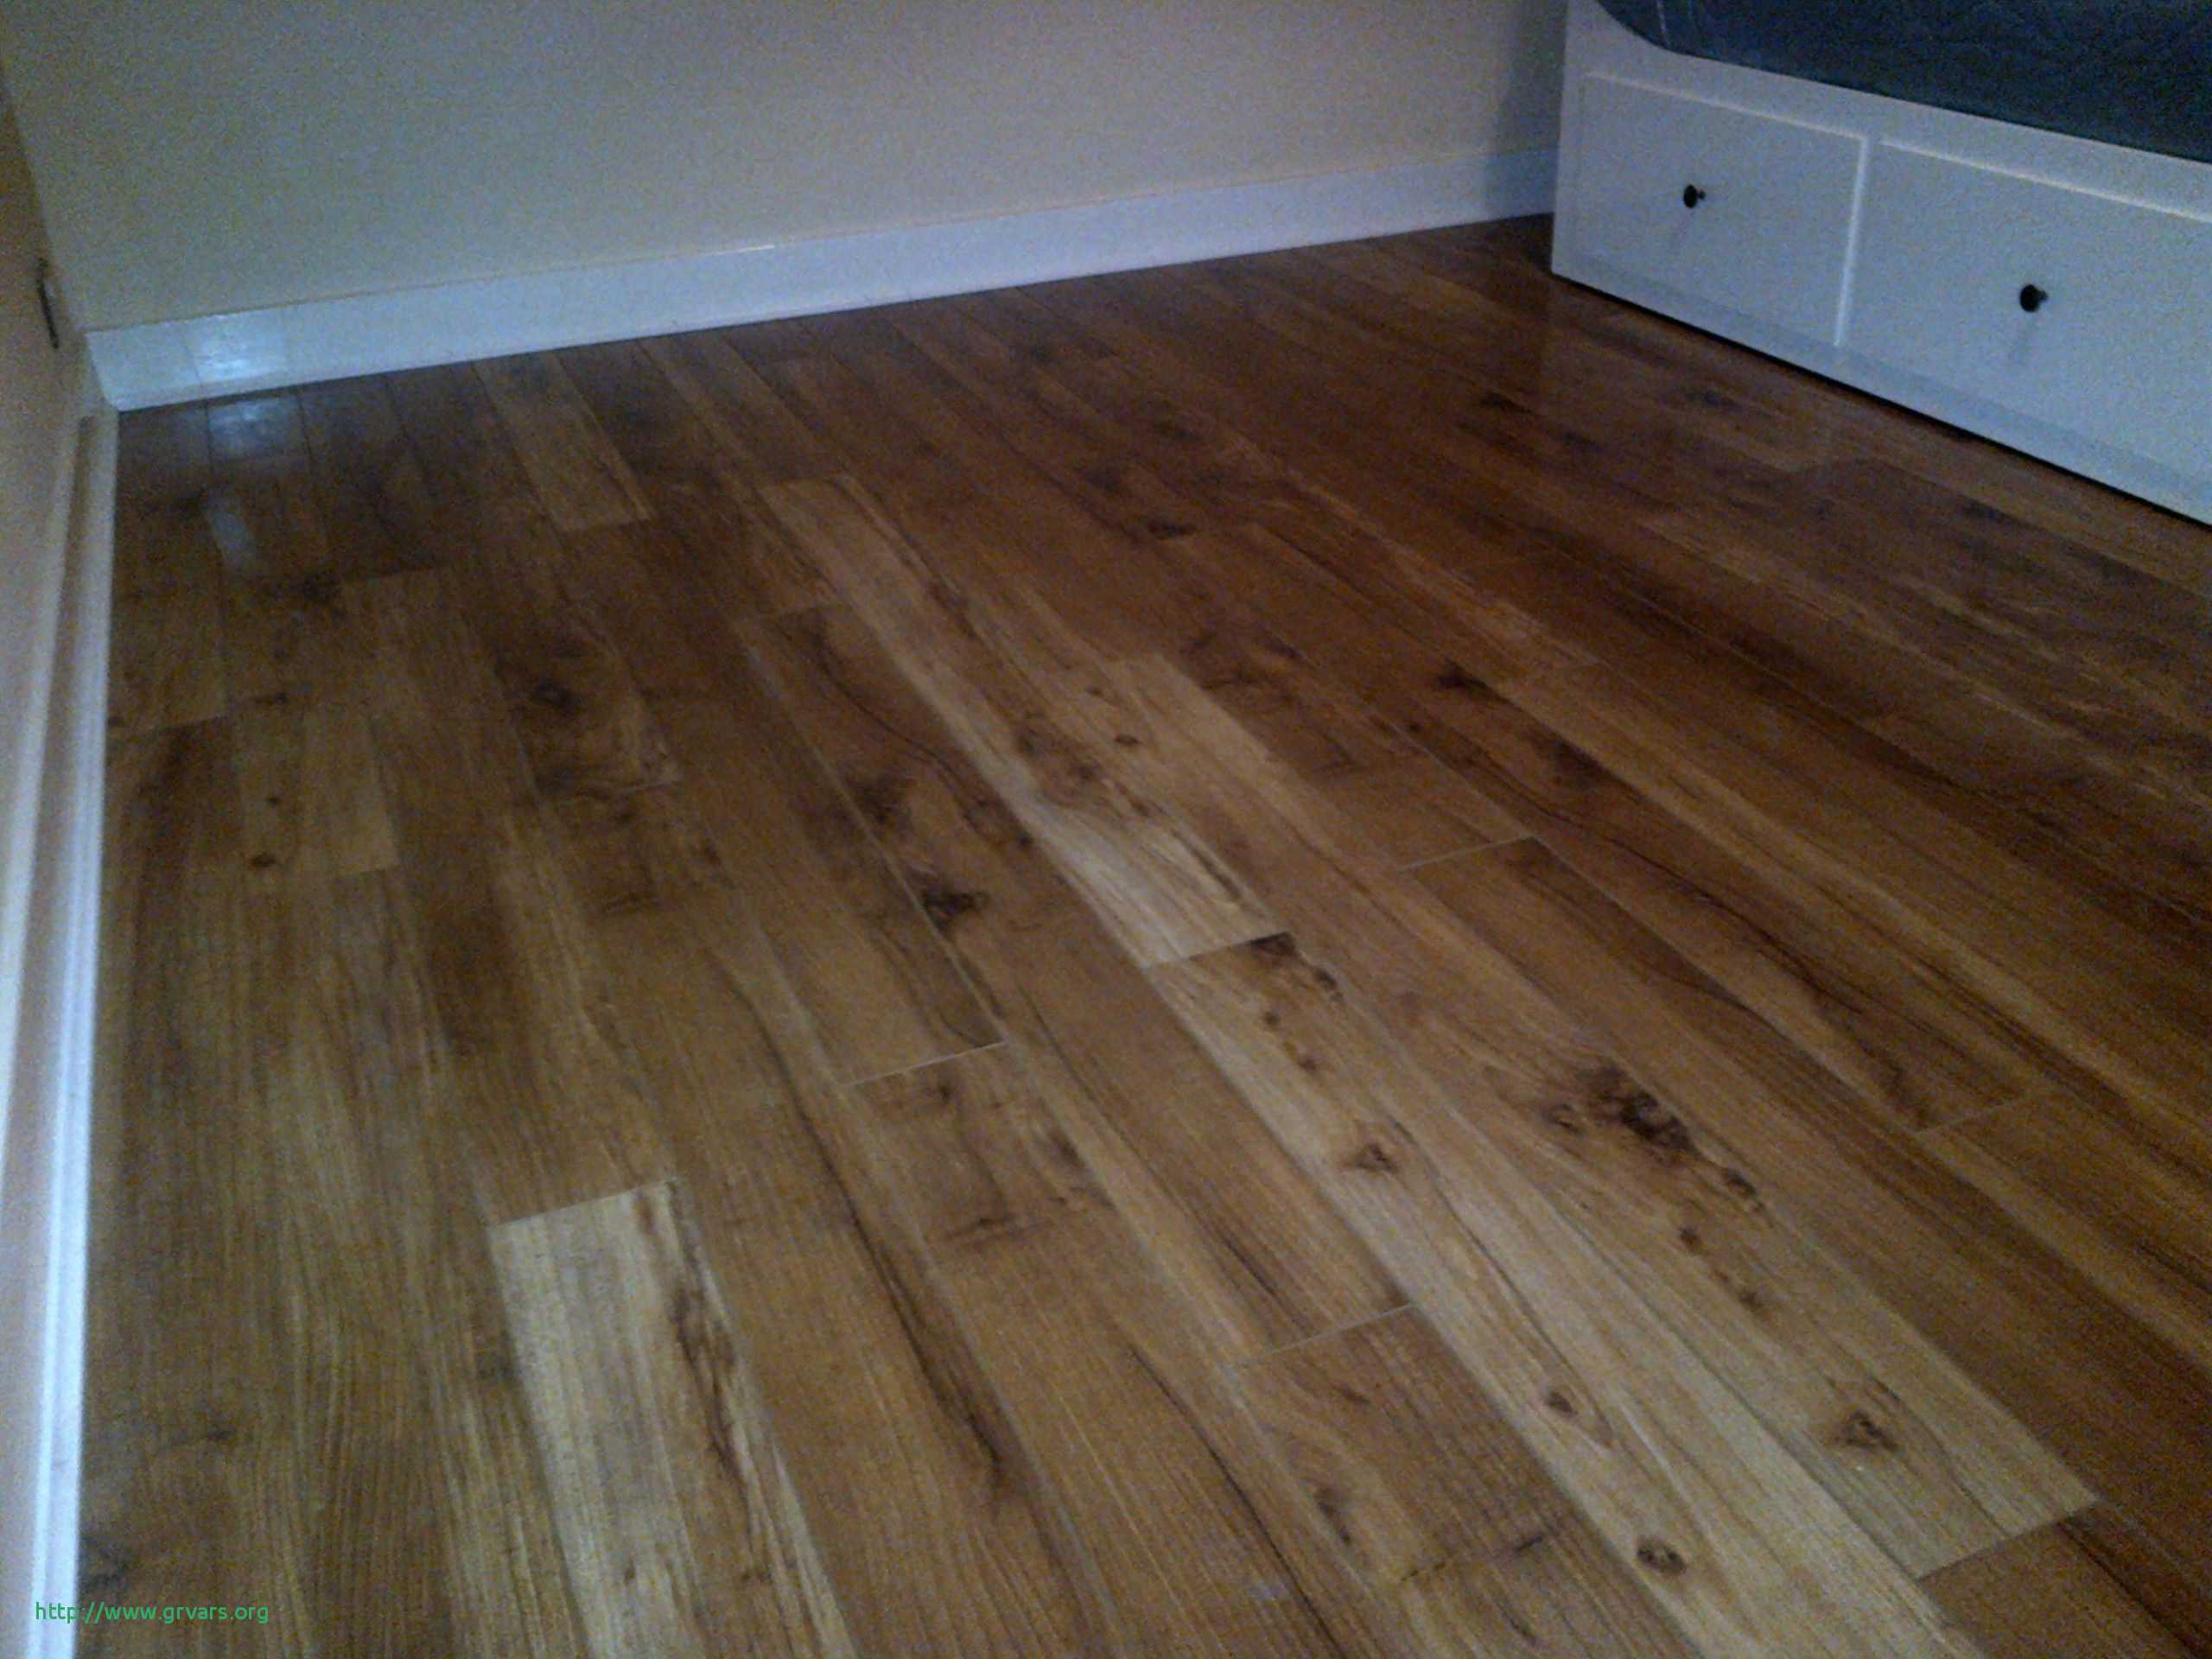 how to clean engineered hardwood floors bona of 23 nouveau how to clean engineered wood floors with vinegar ideas blog with regard to how to clean engineered wood floors with vinegar charmant well done niall now you can find